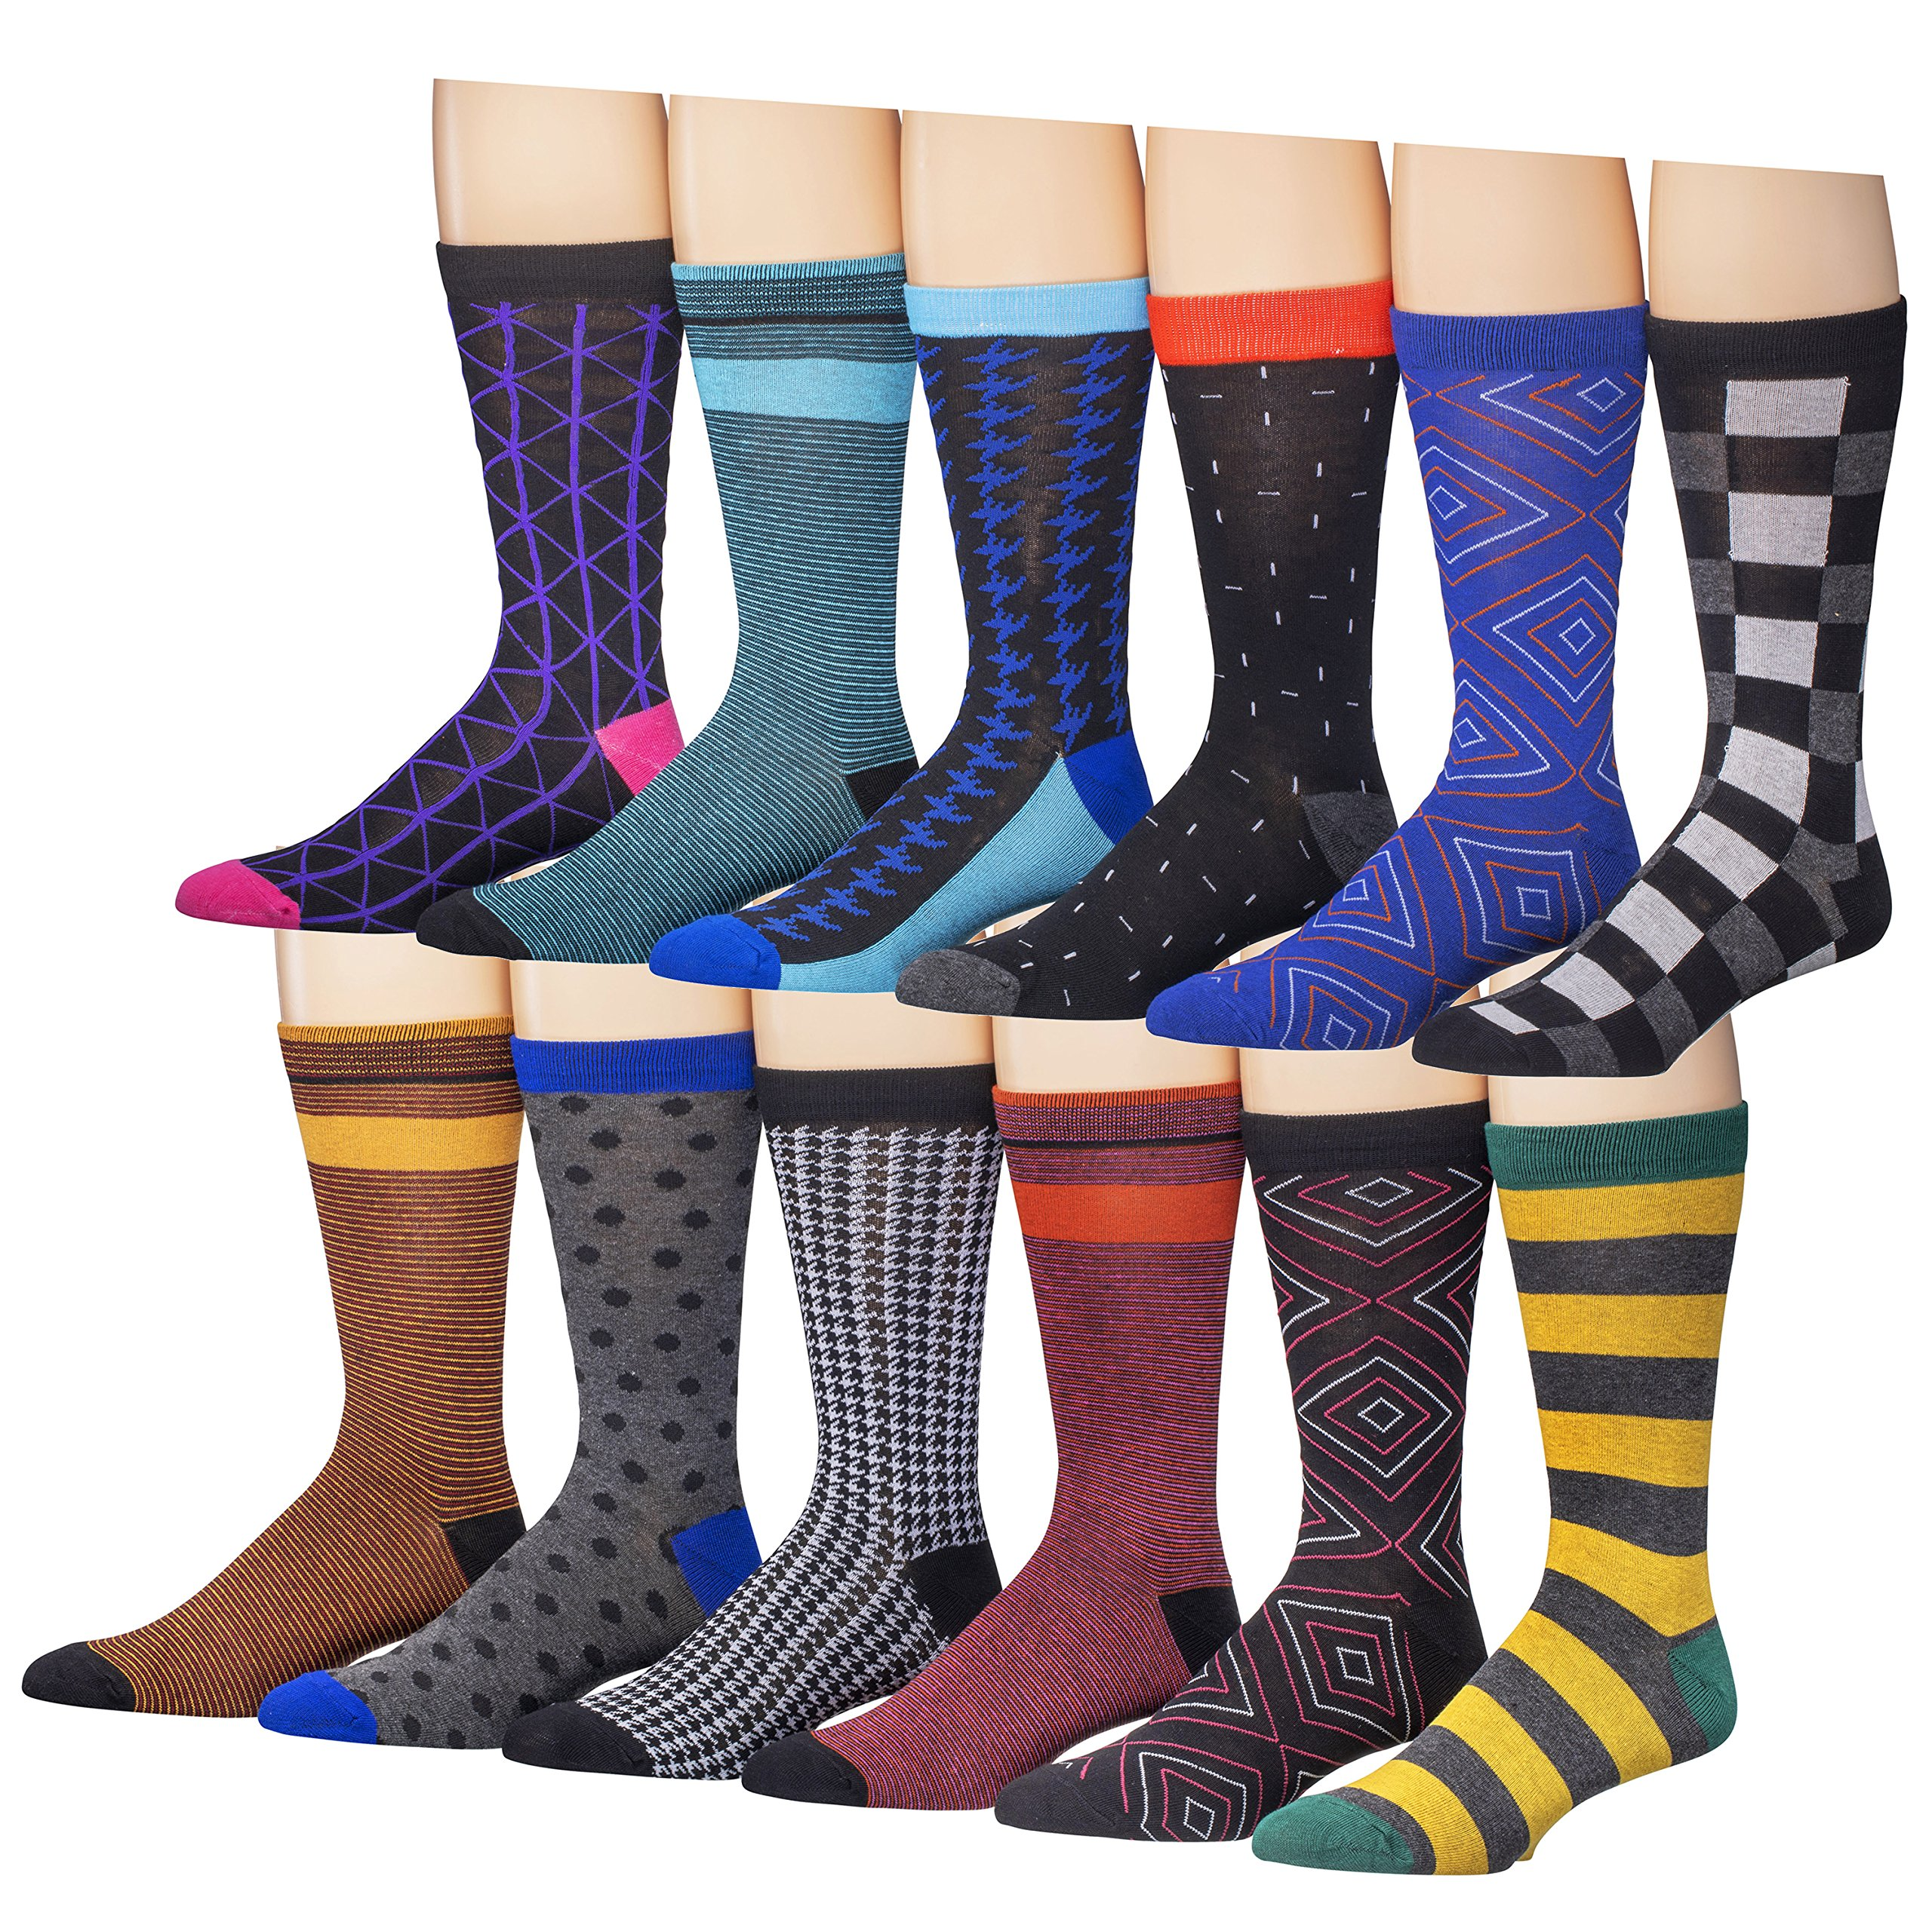 Beged Cotton Crew Funky Dress Socks for Men (12-Pack) – Fun Colorful Patterns -3400